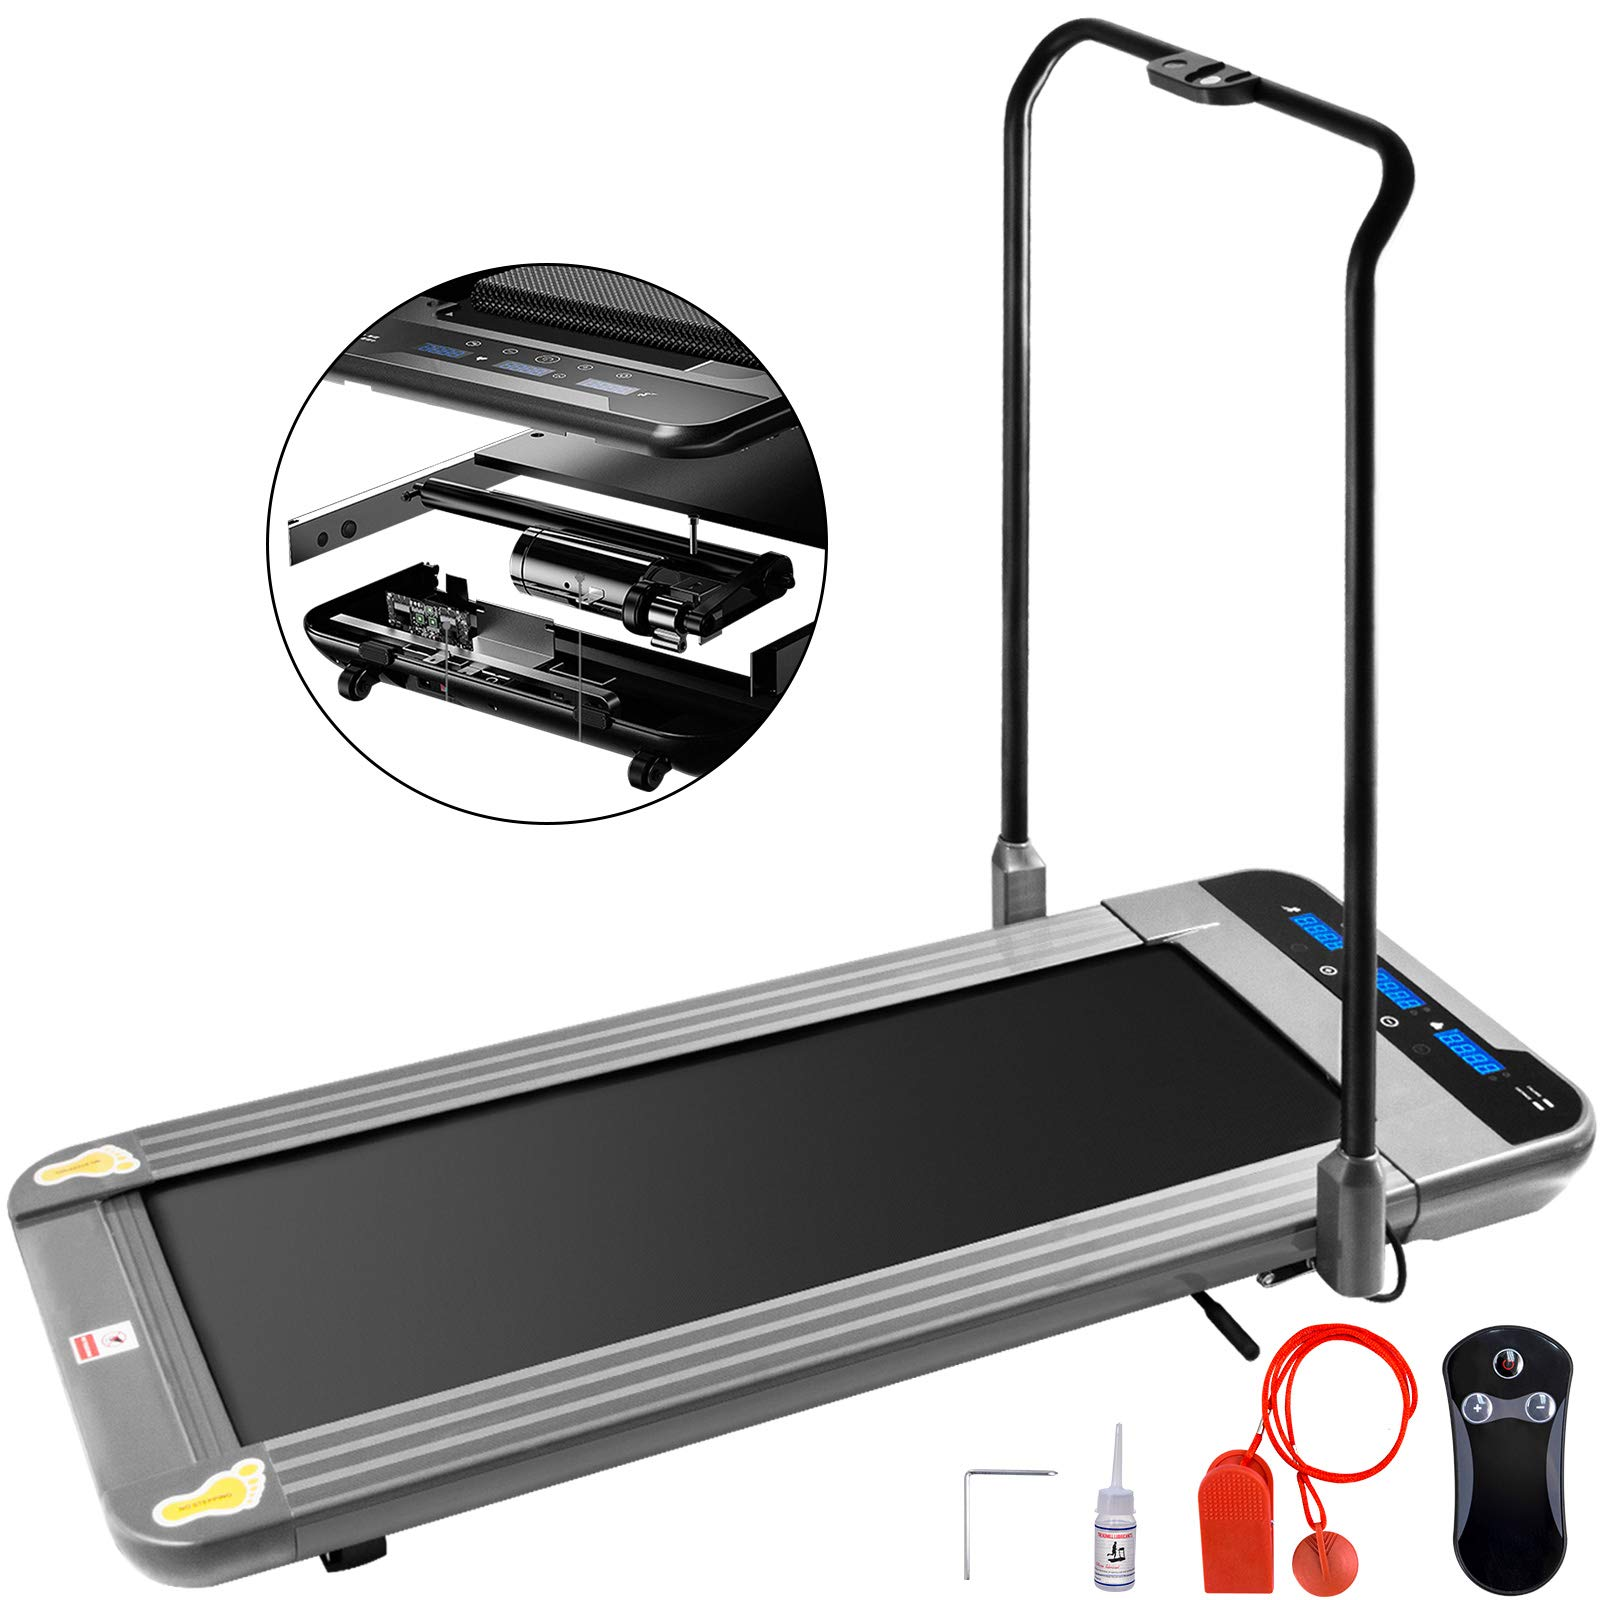 Popsport Smart Treadmill Folding Digital Portable Treadly Treadmill Slim Electric Walking Pad Fitness Training for Home Office (Sliver with Handle)